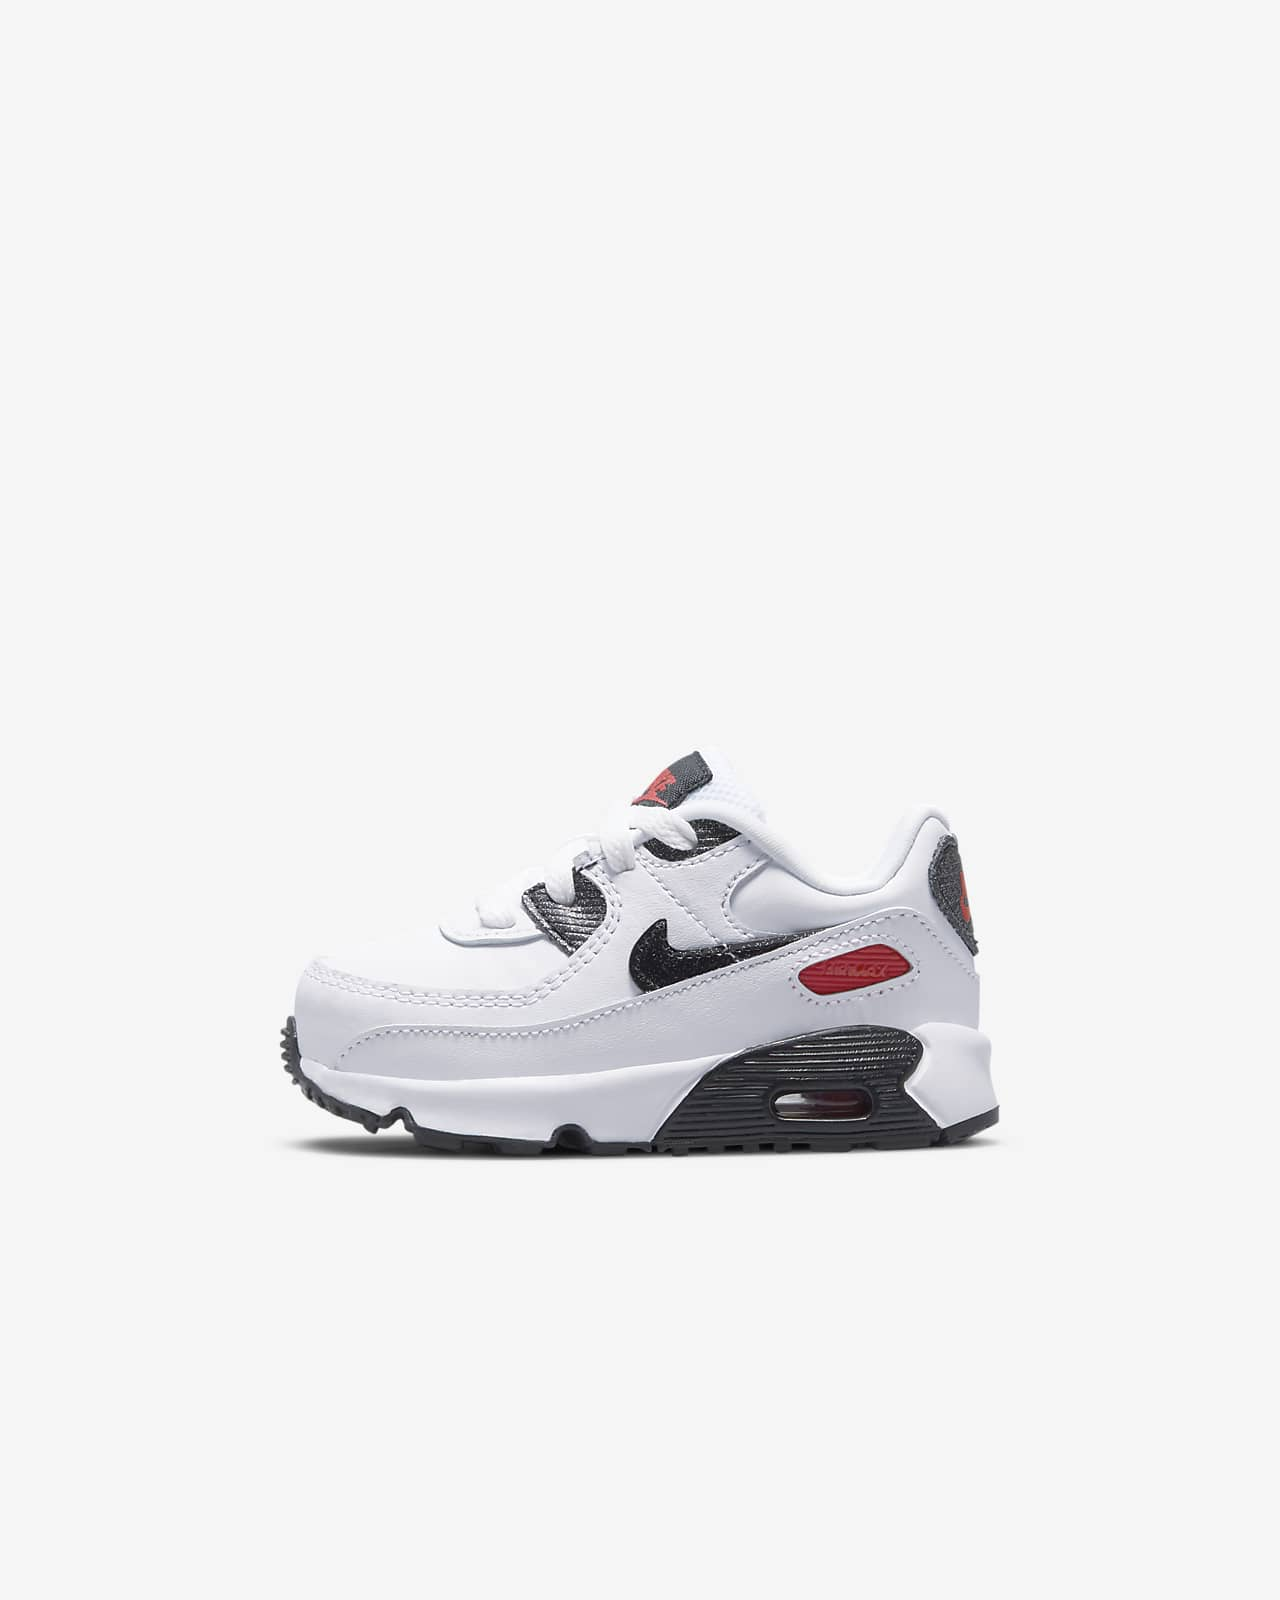 Nike Air Max 90 LTR SE Baby/Toddler Shoes